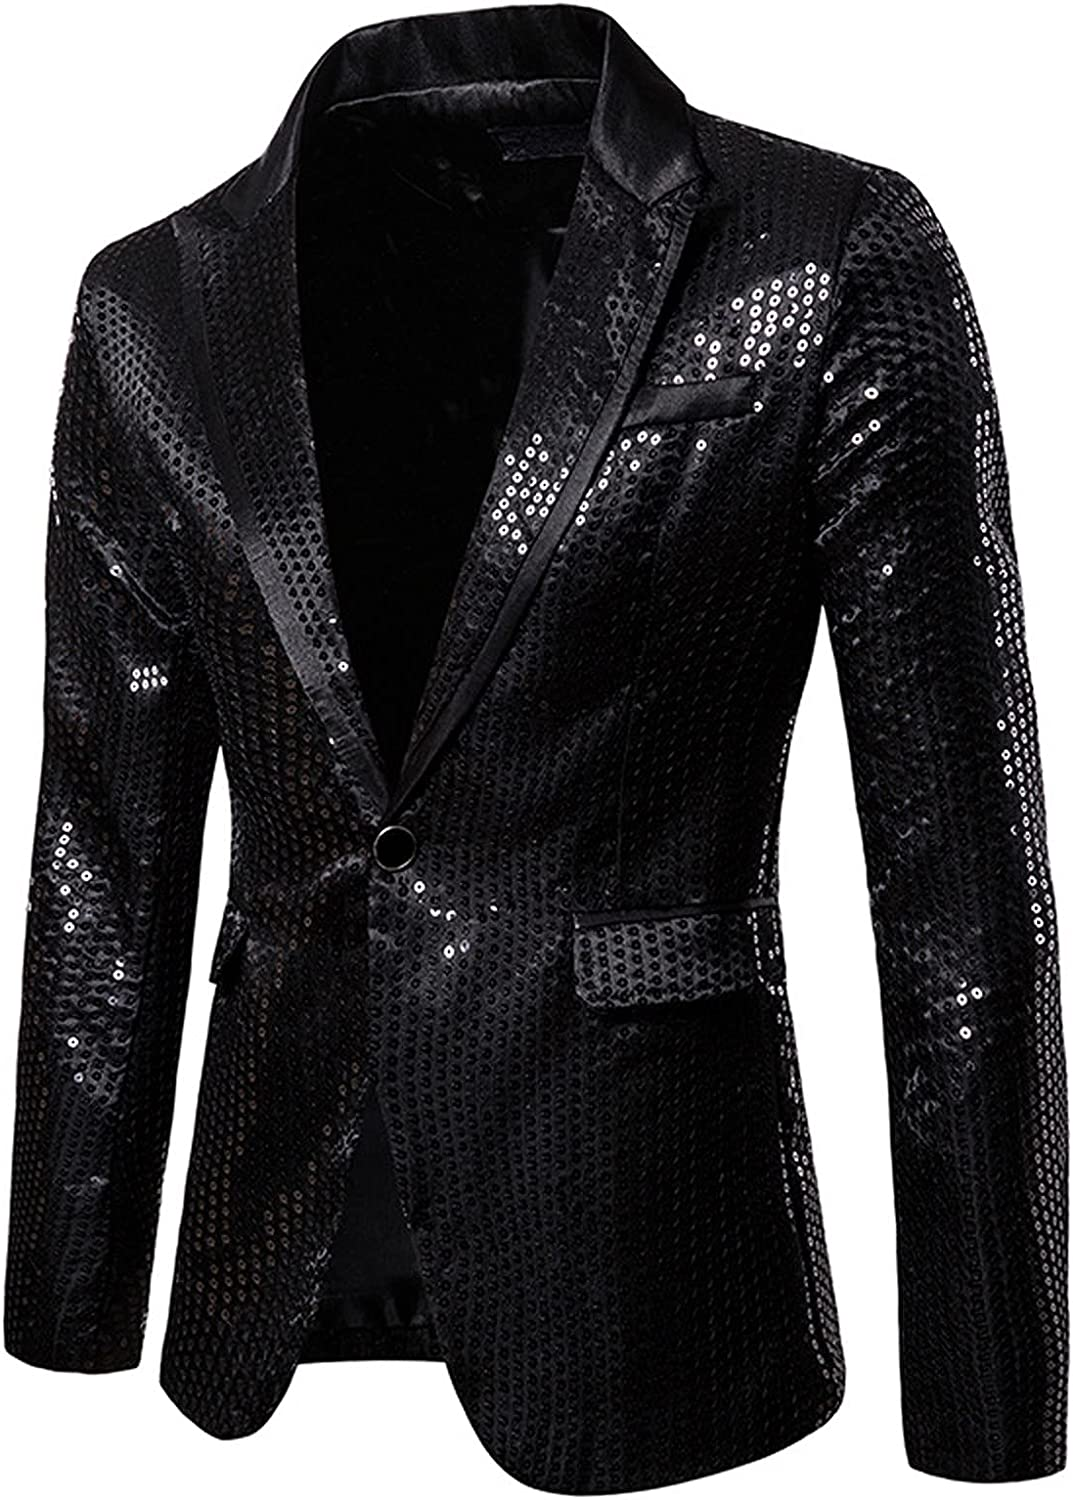 Mens Blazer Suit Shiny Sequins Lapel Jacket One Button Jacket Cardigan Stylish Tuxedo with Pocket for Party Banquet Prom